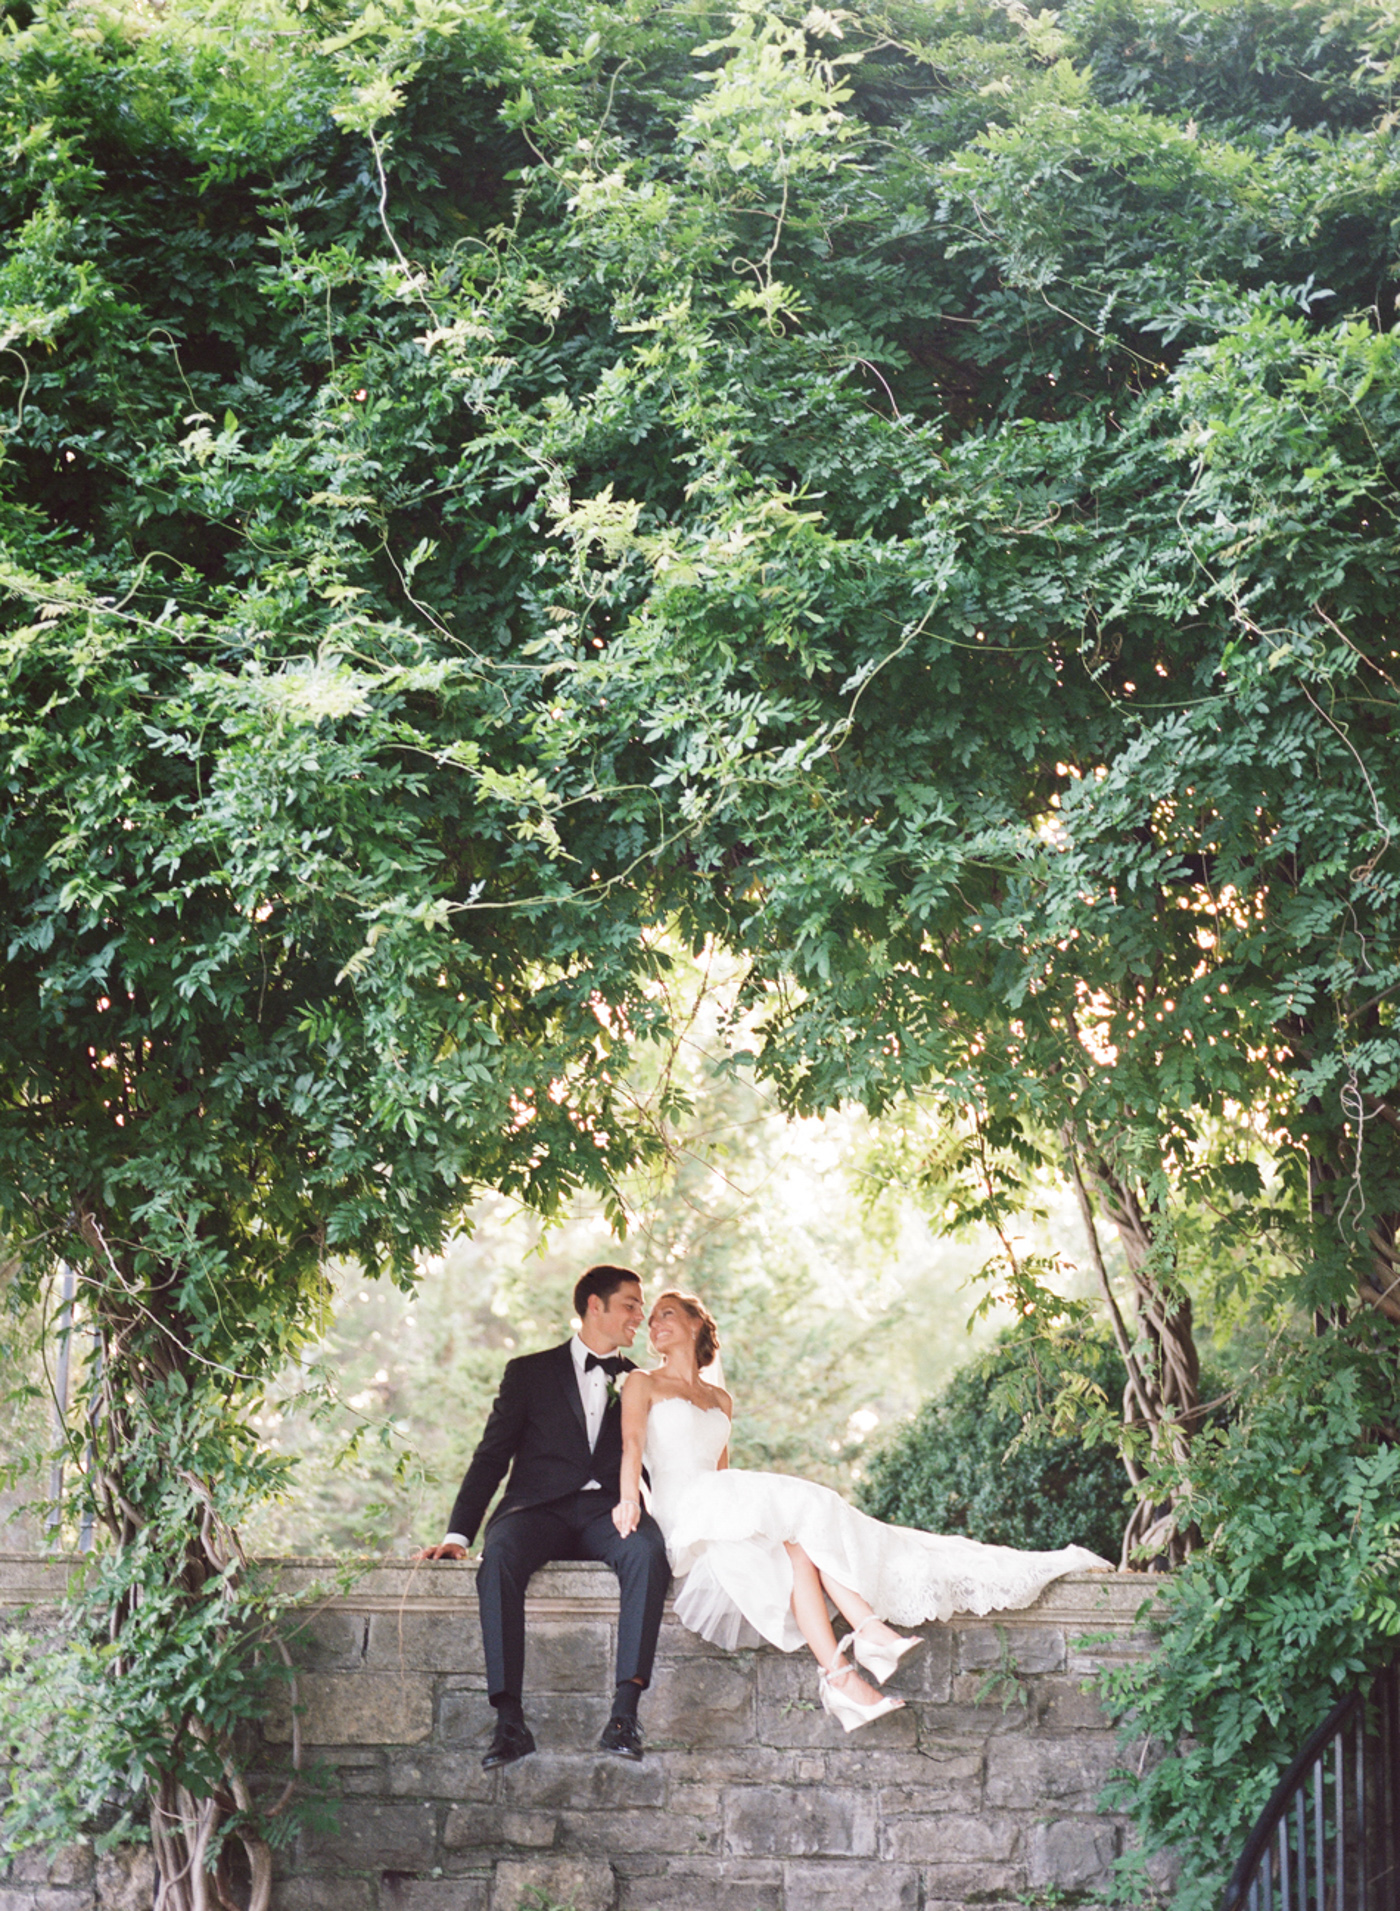 Nashville wedding at Cheekwood Museum and Gardens